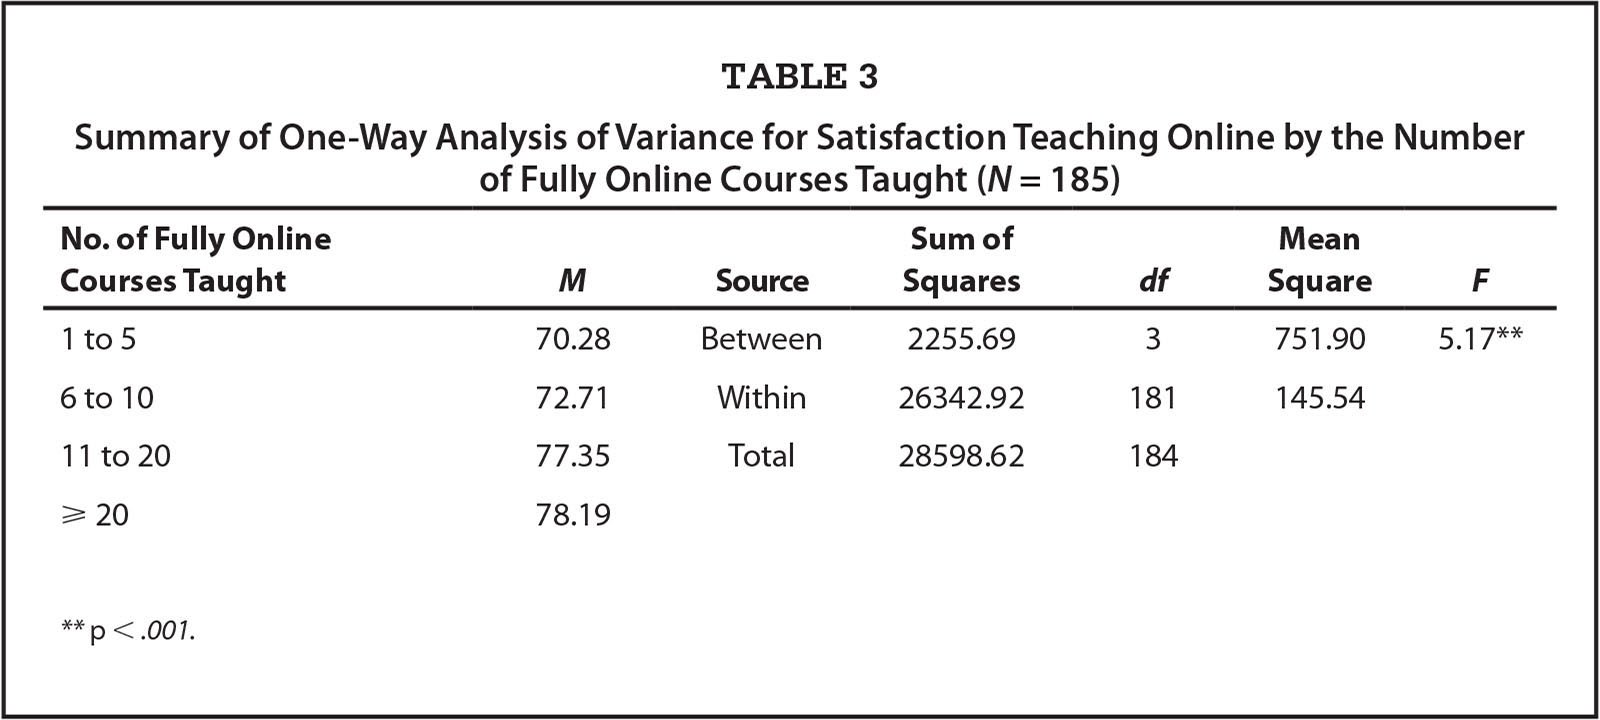 Summary of One-Way Analysis of Variance for Satisfaction Teaching Online by the Number of Fully Online Courses Taught (N = 185)